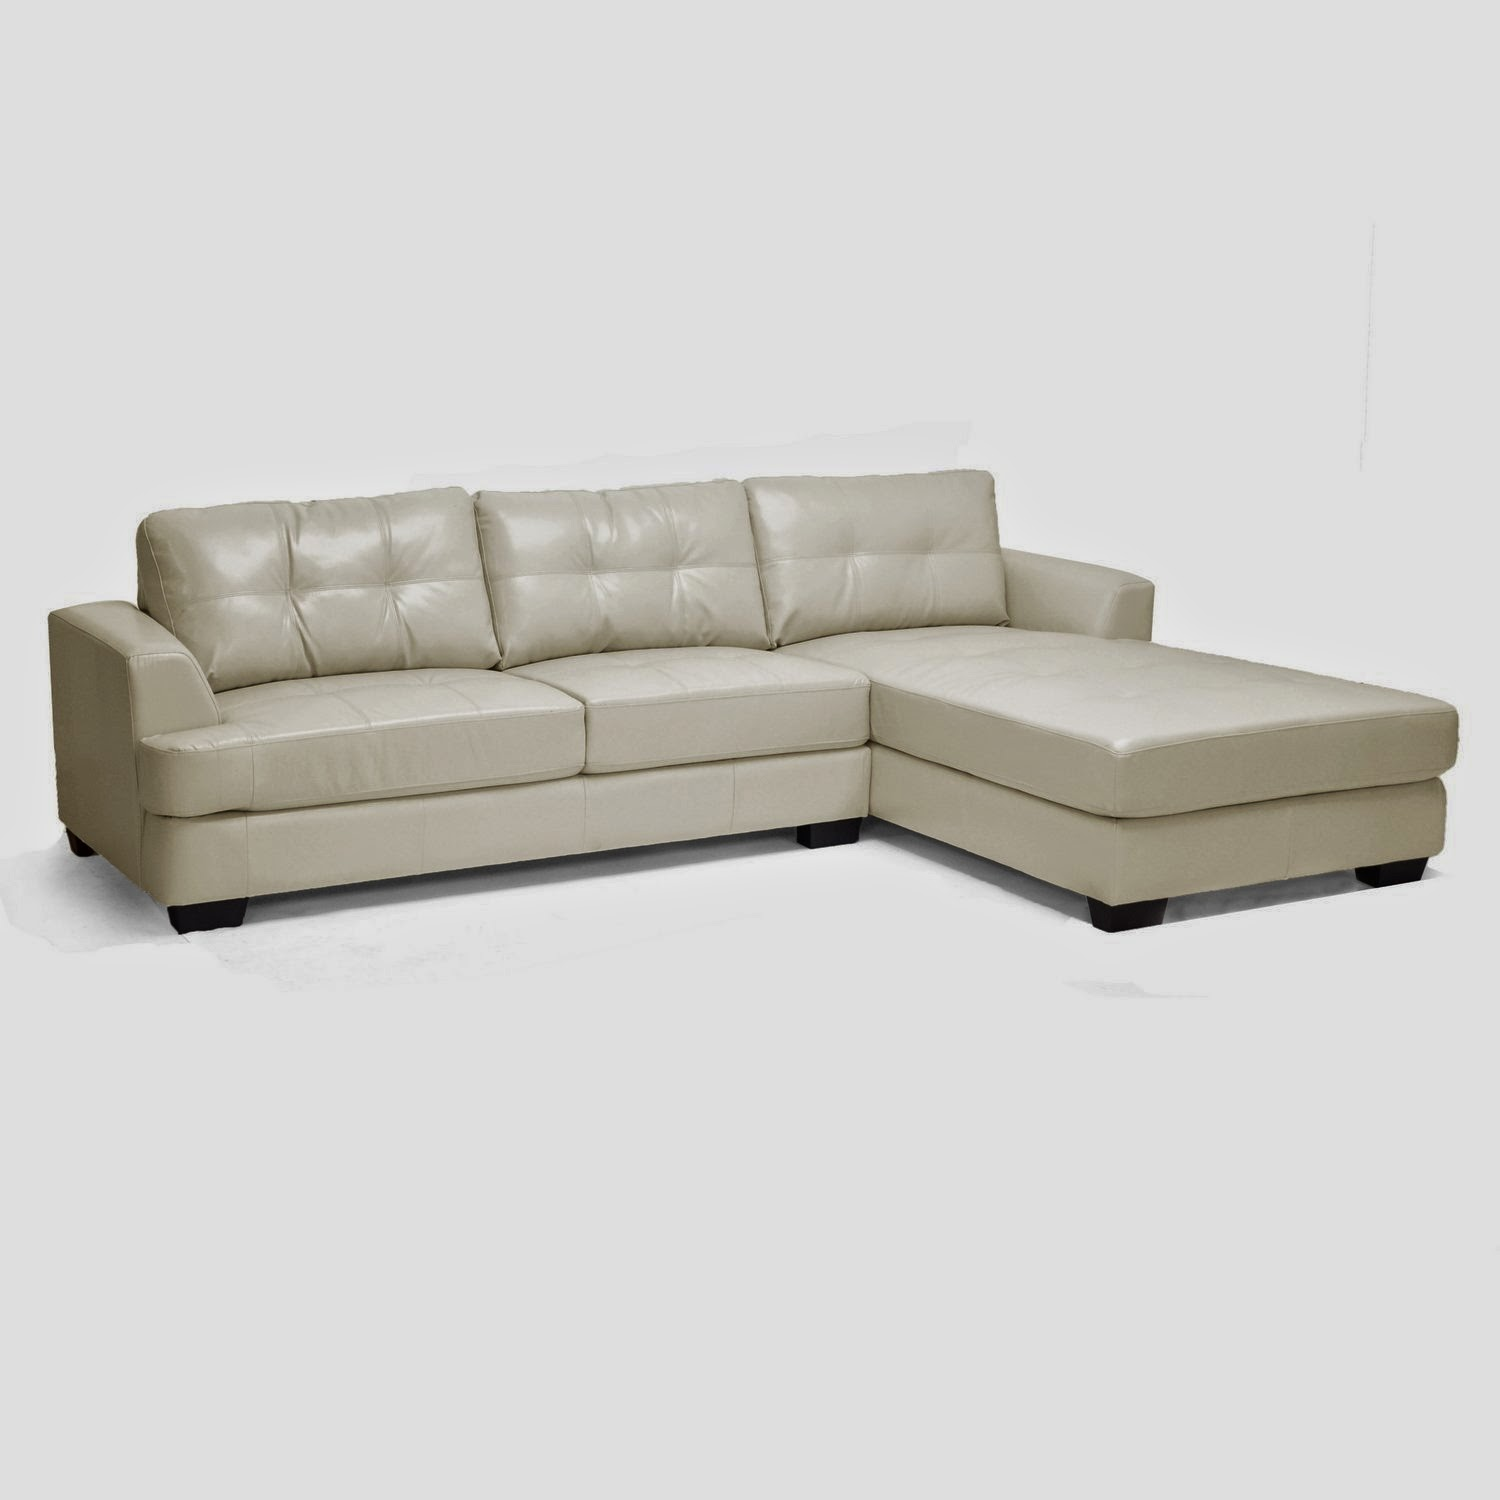 Shay Lounge Couch With Chaise Leather Couch With Chaise Lounge